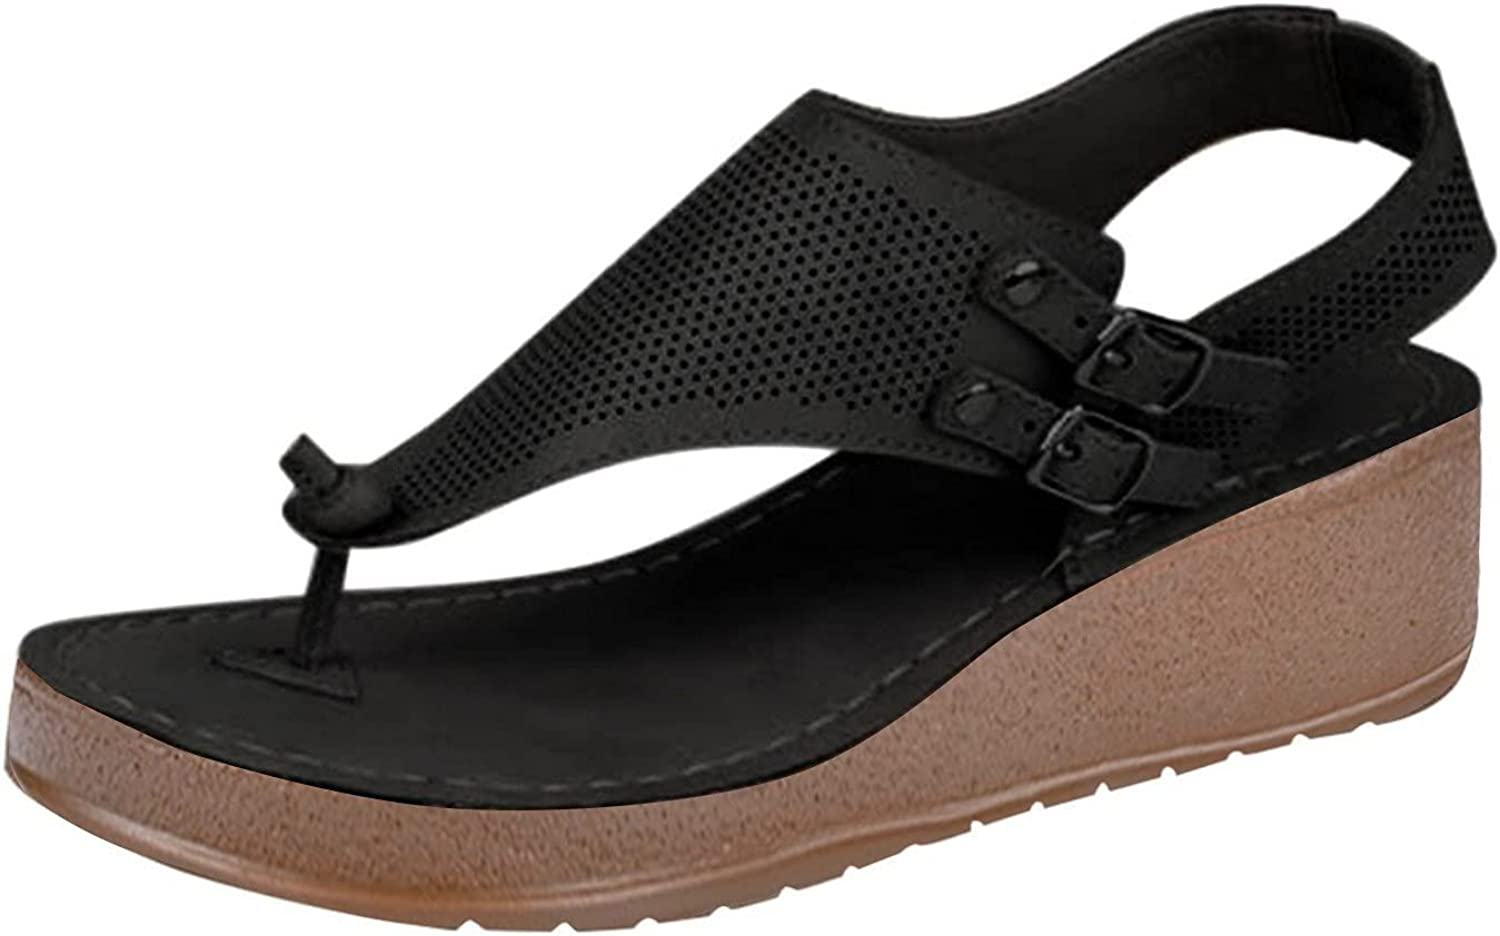 Adeliber Fashion Sexy Shoes Women's Ladies Outdoor Hollow Out Fl